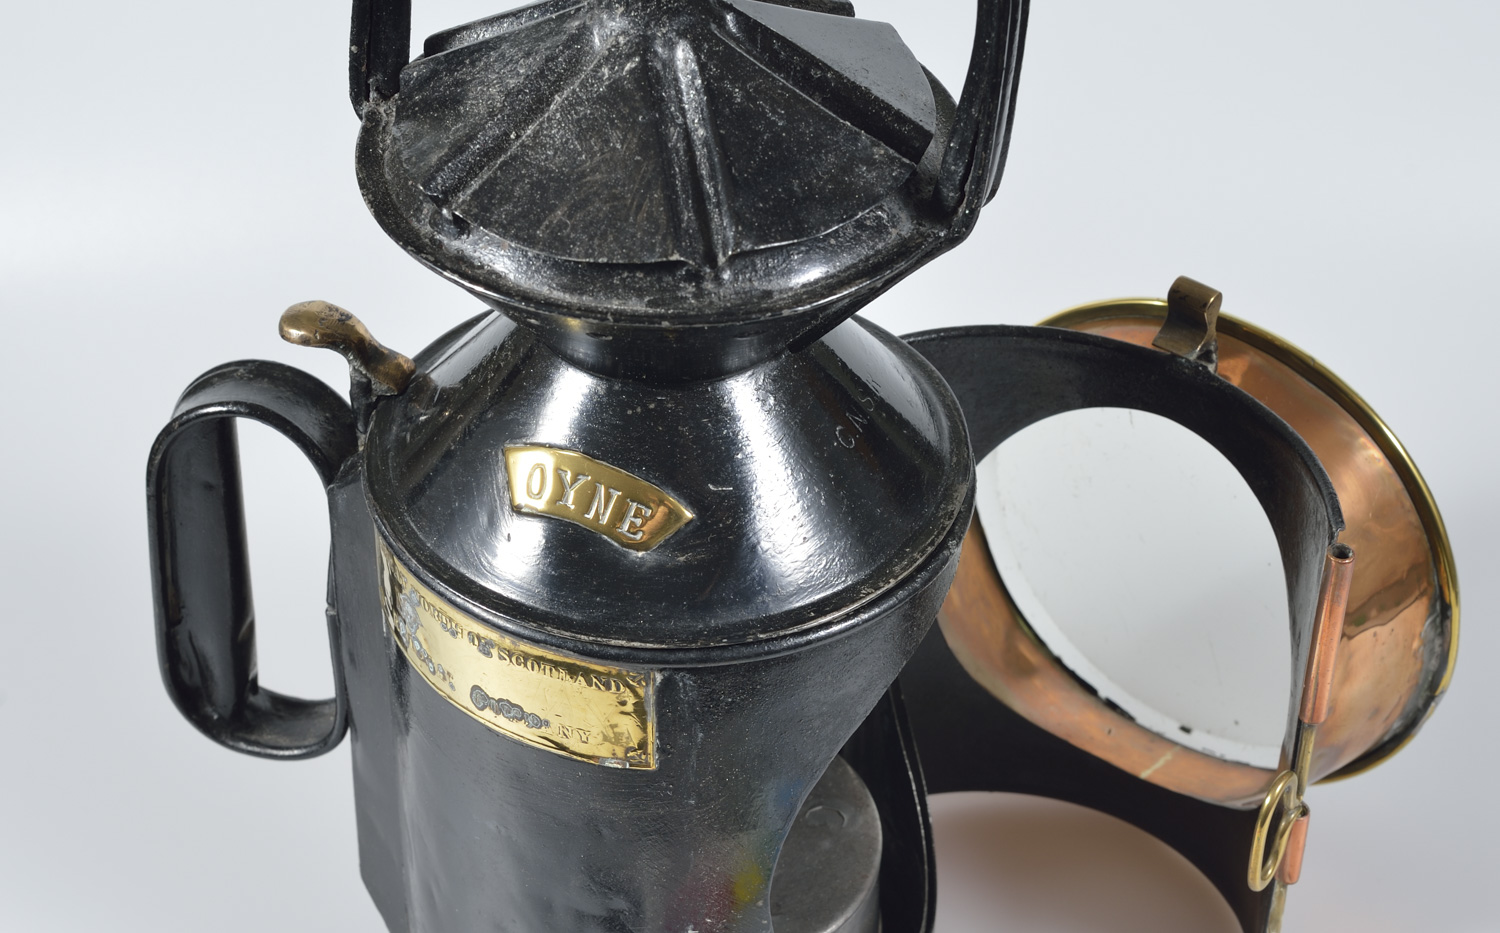 an image of a black railway lamp from the museum collections.